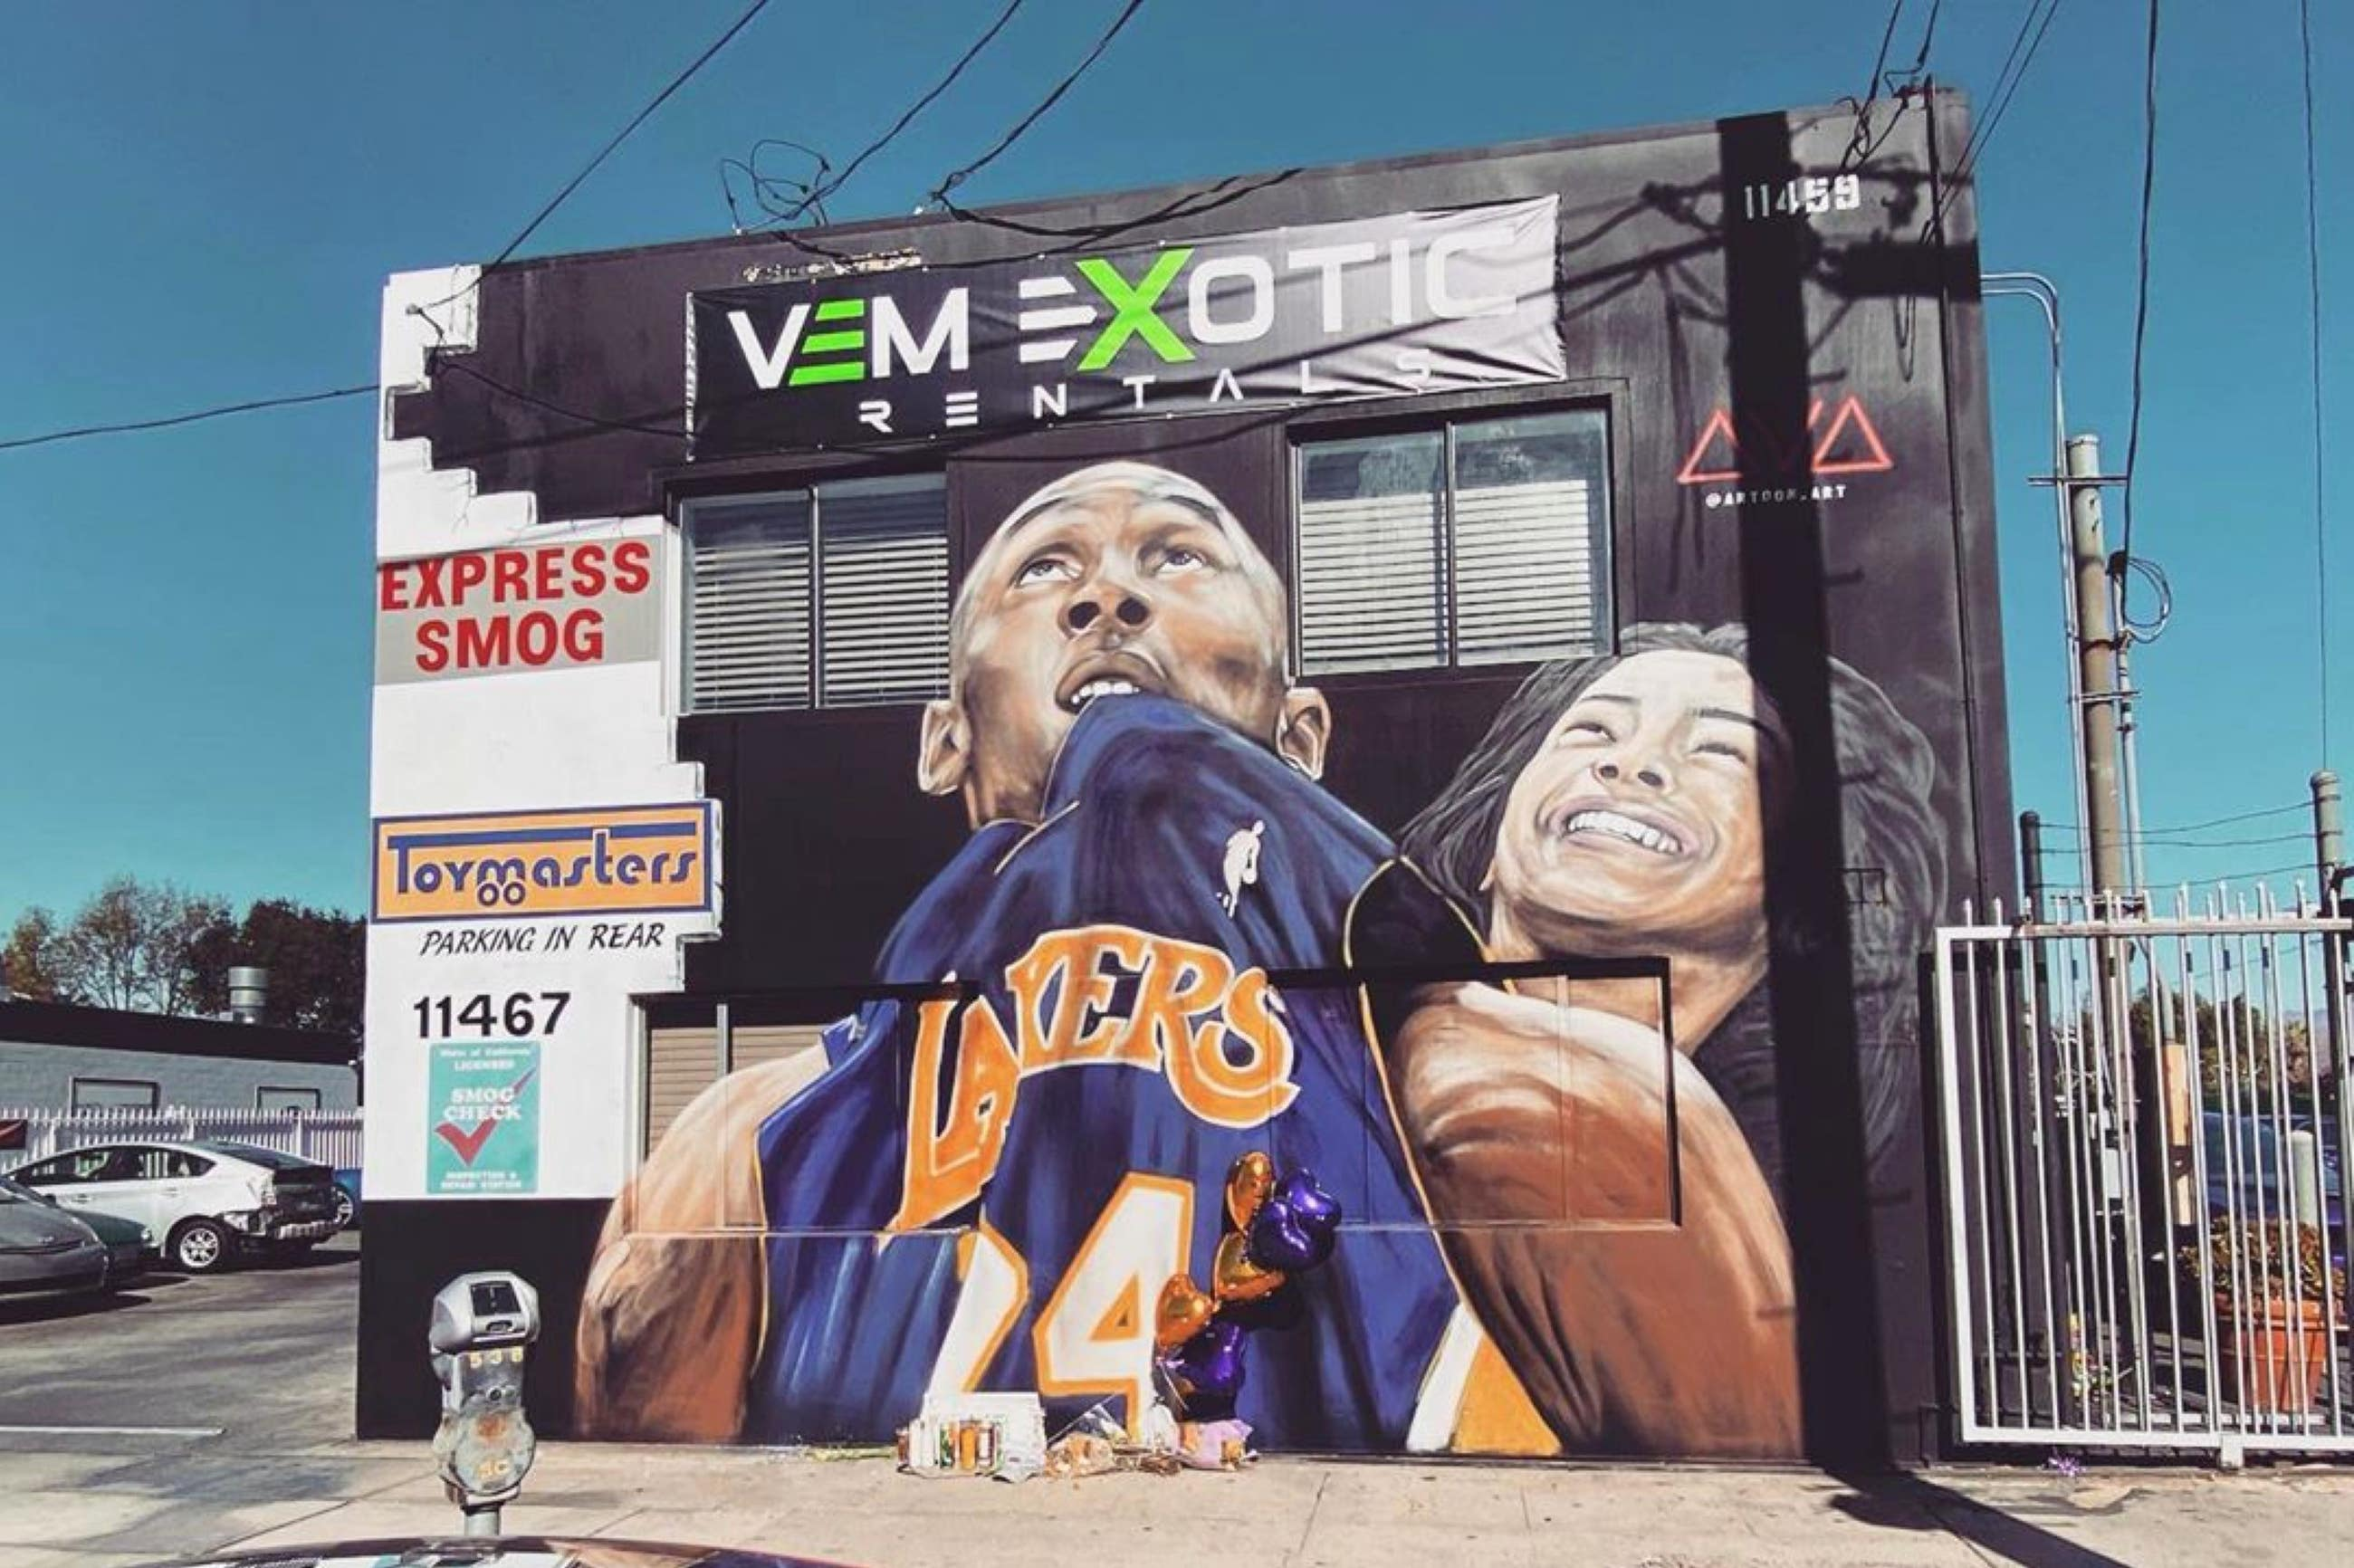 Kobe and Gianna Bryant mural by Artoon at VEM Exotic Rentals in Studio City